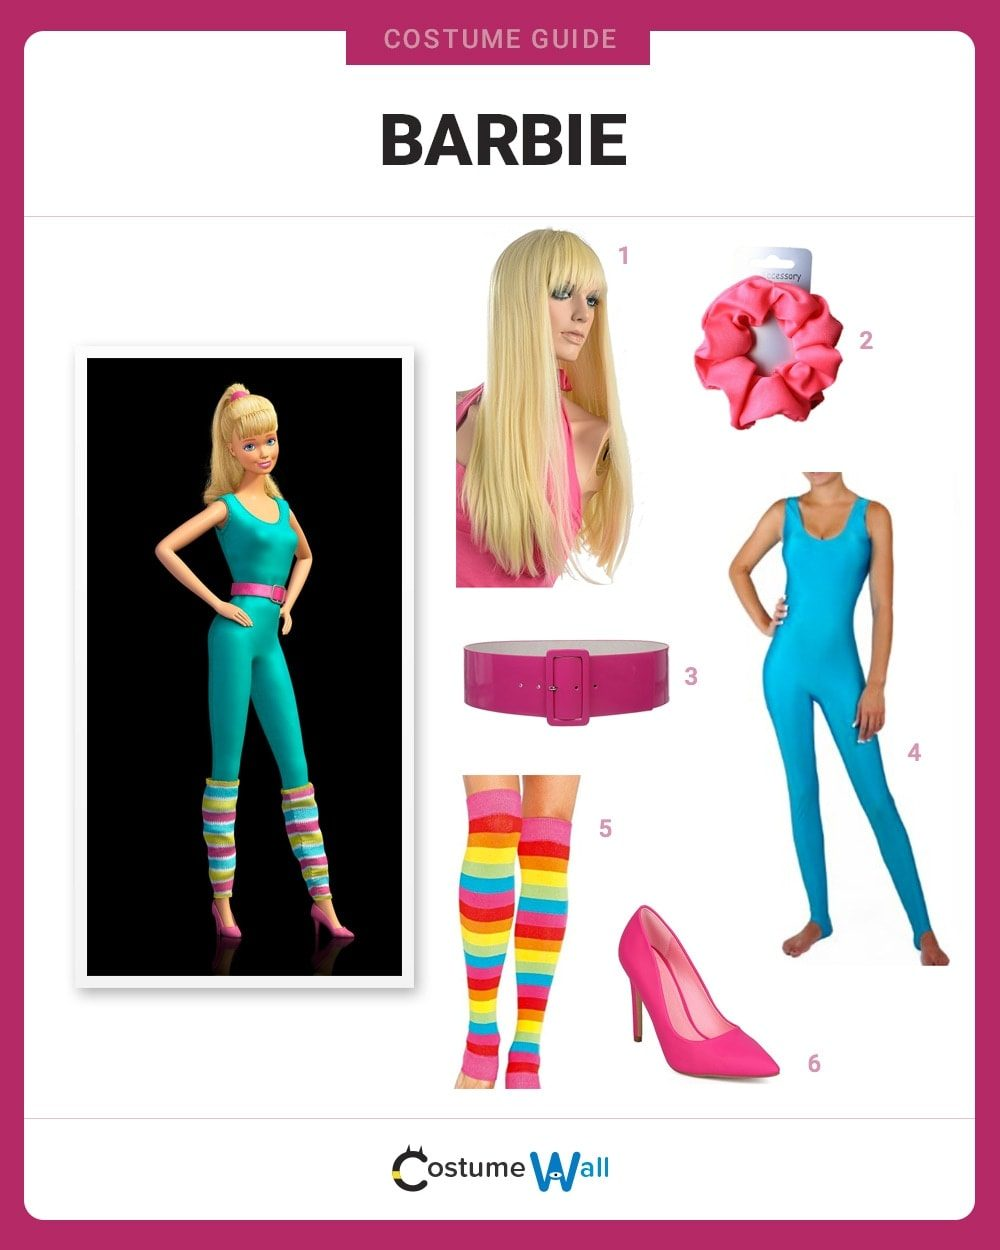 Barbie Costume Guide